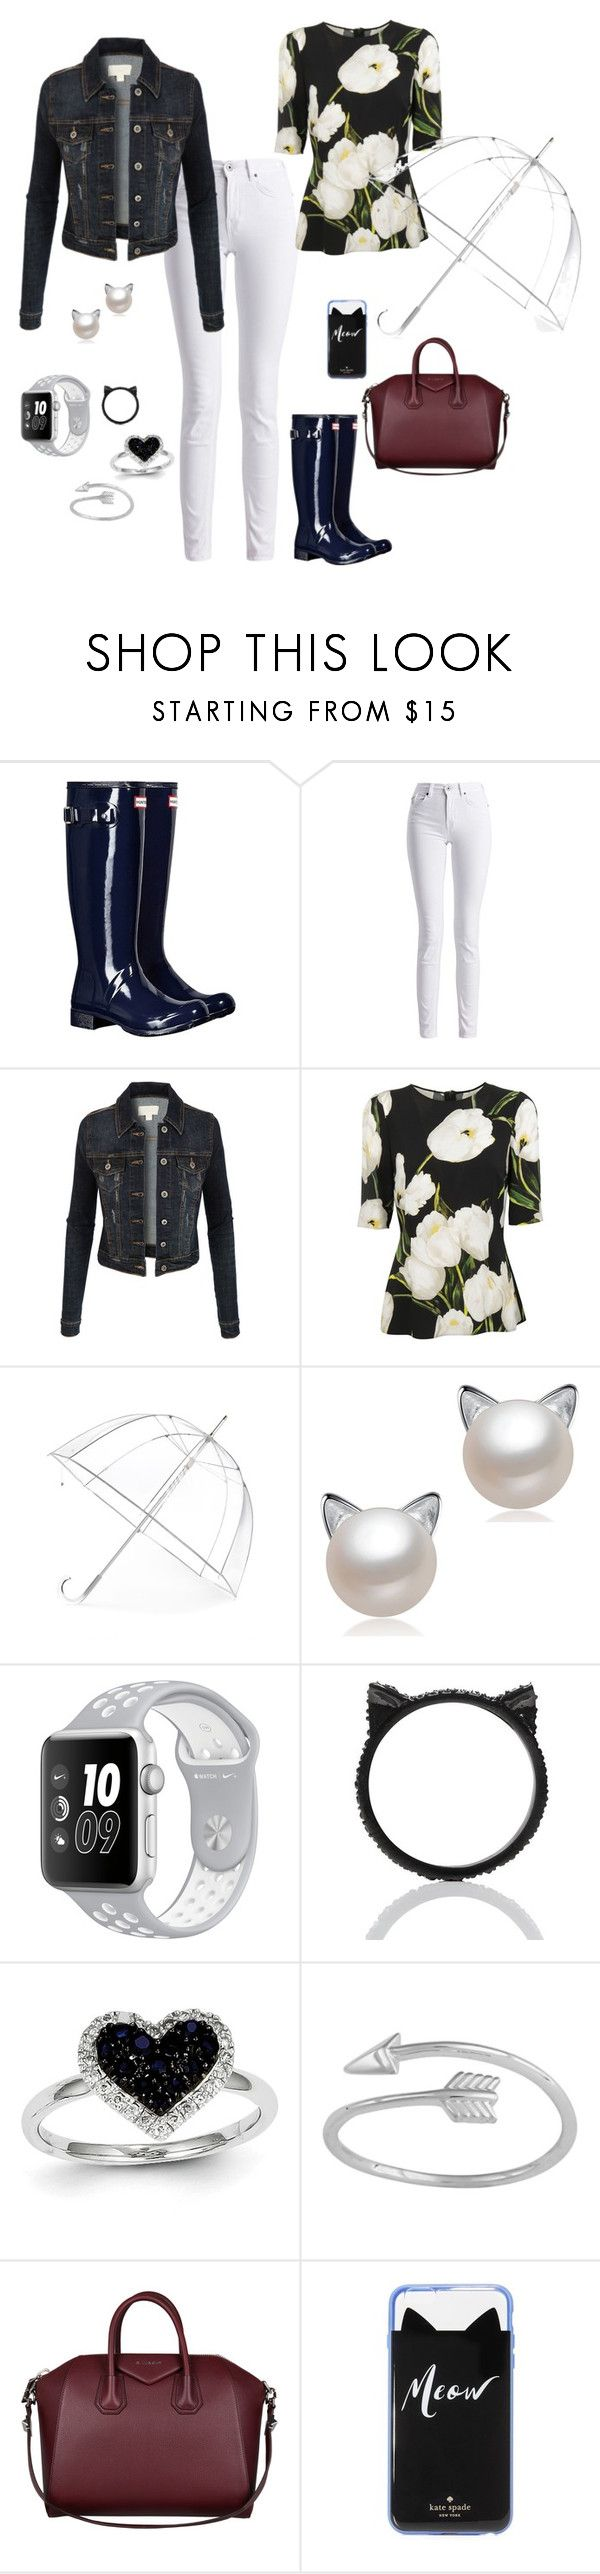 Dia de chuva! II by simone-silva-s2 on Polyvore featuring moda, Dolce&Gabbana, LE3NO, Barbour International, Hunter, Givenchy, Kevin Jewelers, Kate Spade, Midsummer Star and Totes